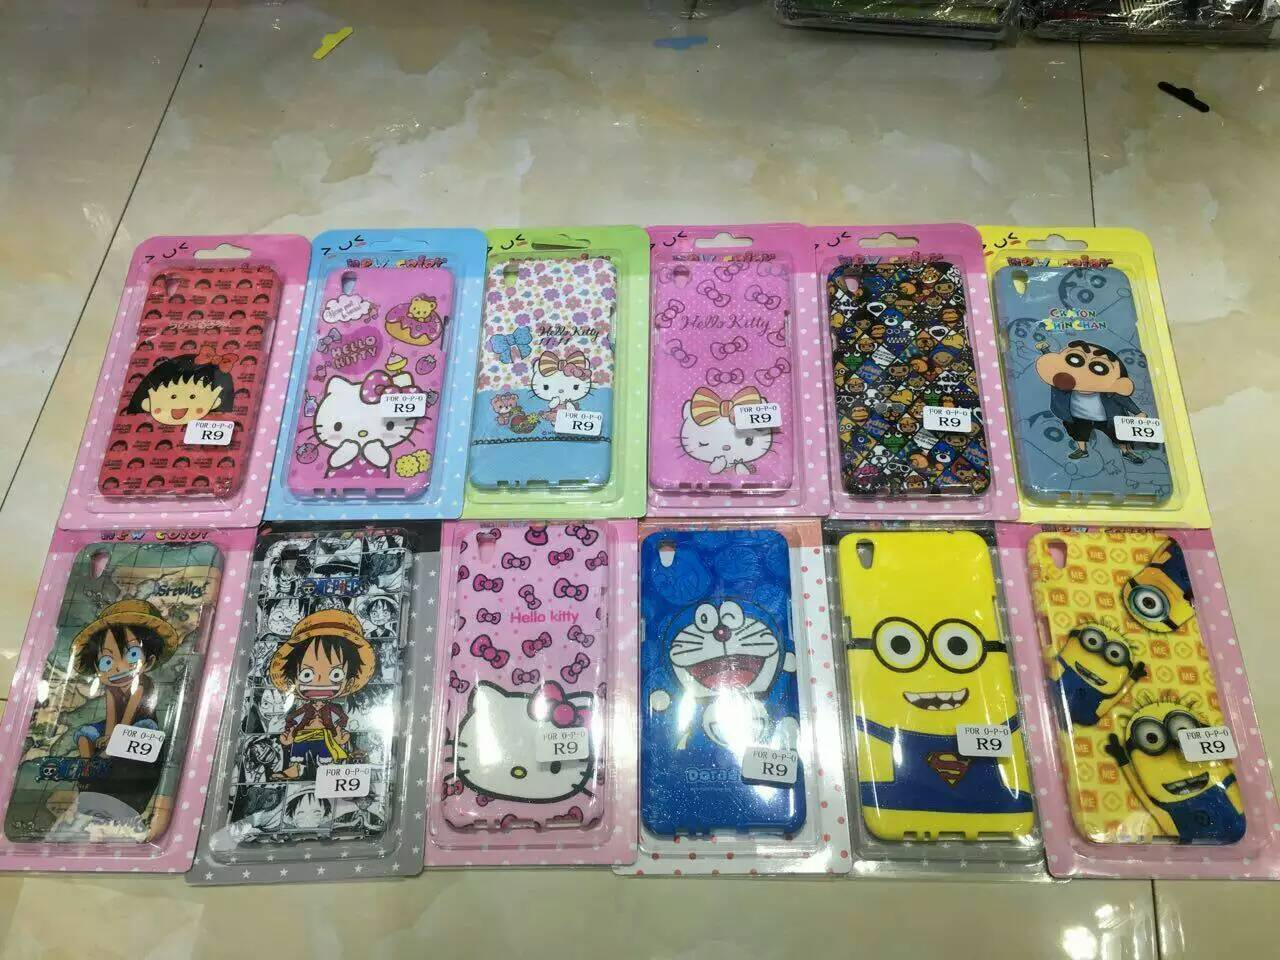 Cell phone TPU Cartoon Cover Case,Mobile phone Protective Cases for Samsung,Iphone,Alcatel,XiaoMi..